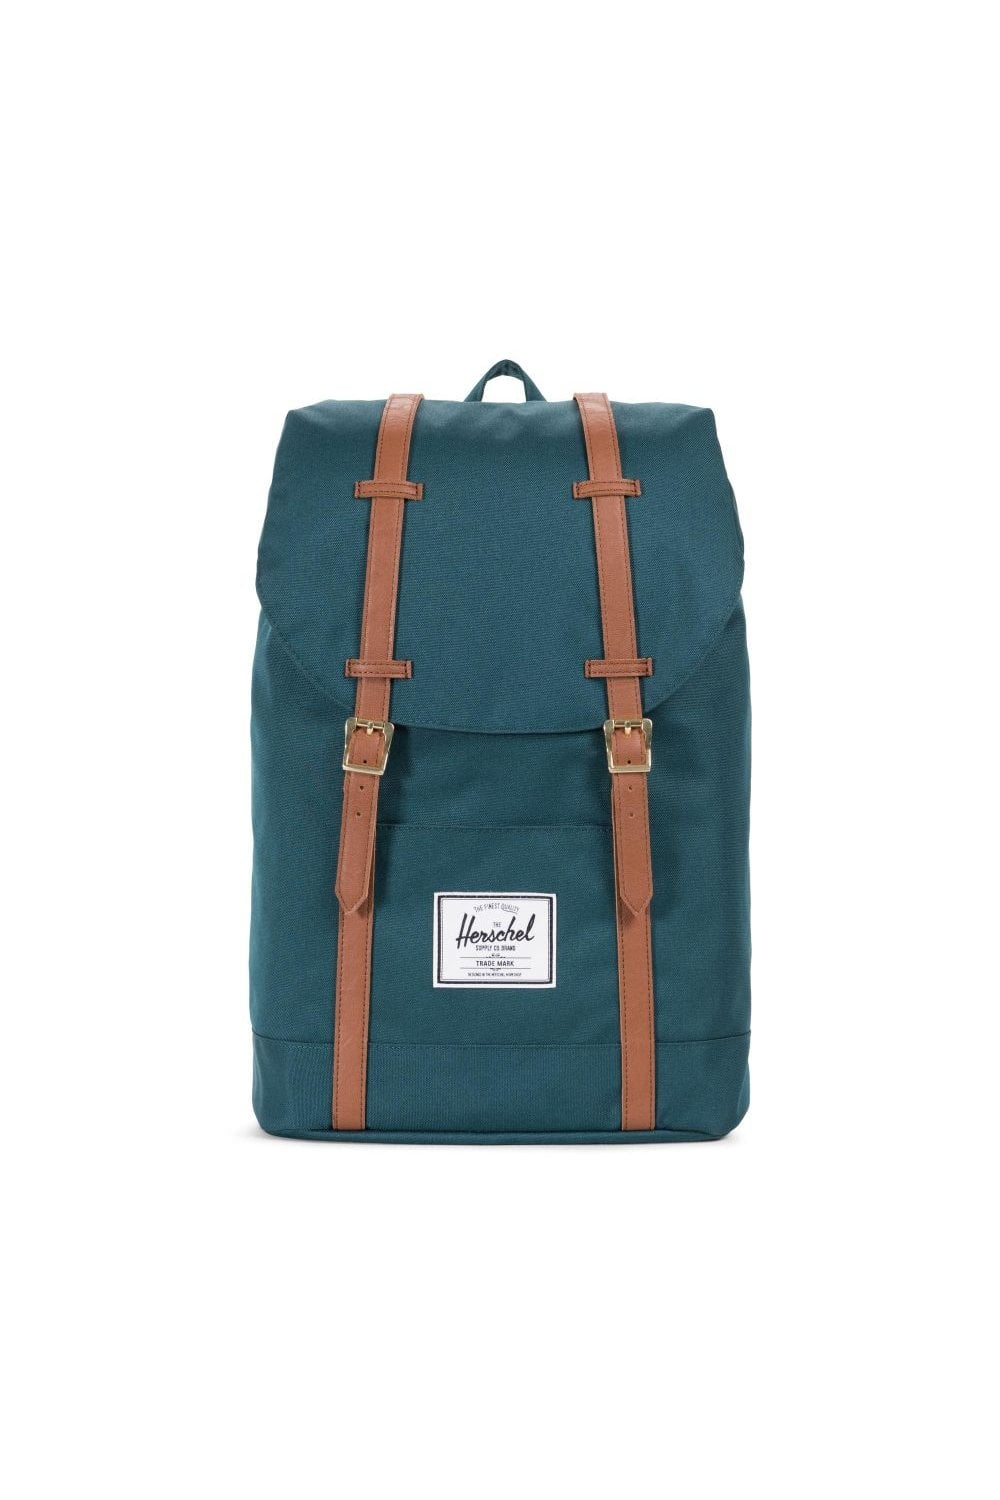 Herschel Supply Co. Retreat Backpack (Deep Teal Tan)   ThirtySix b80f3d652f